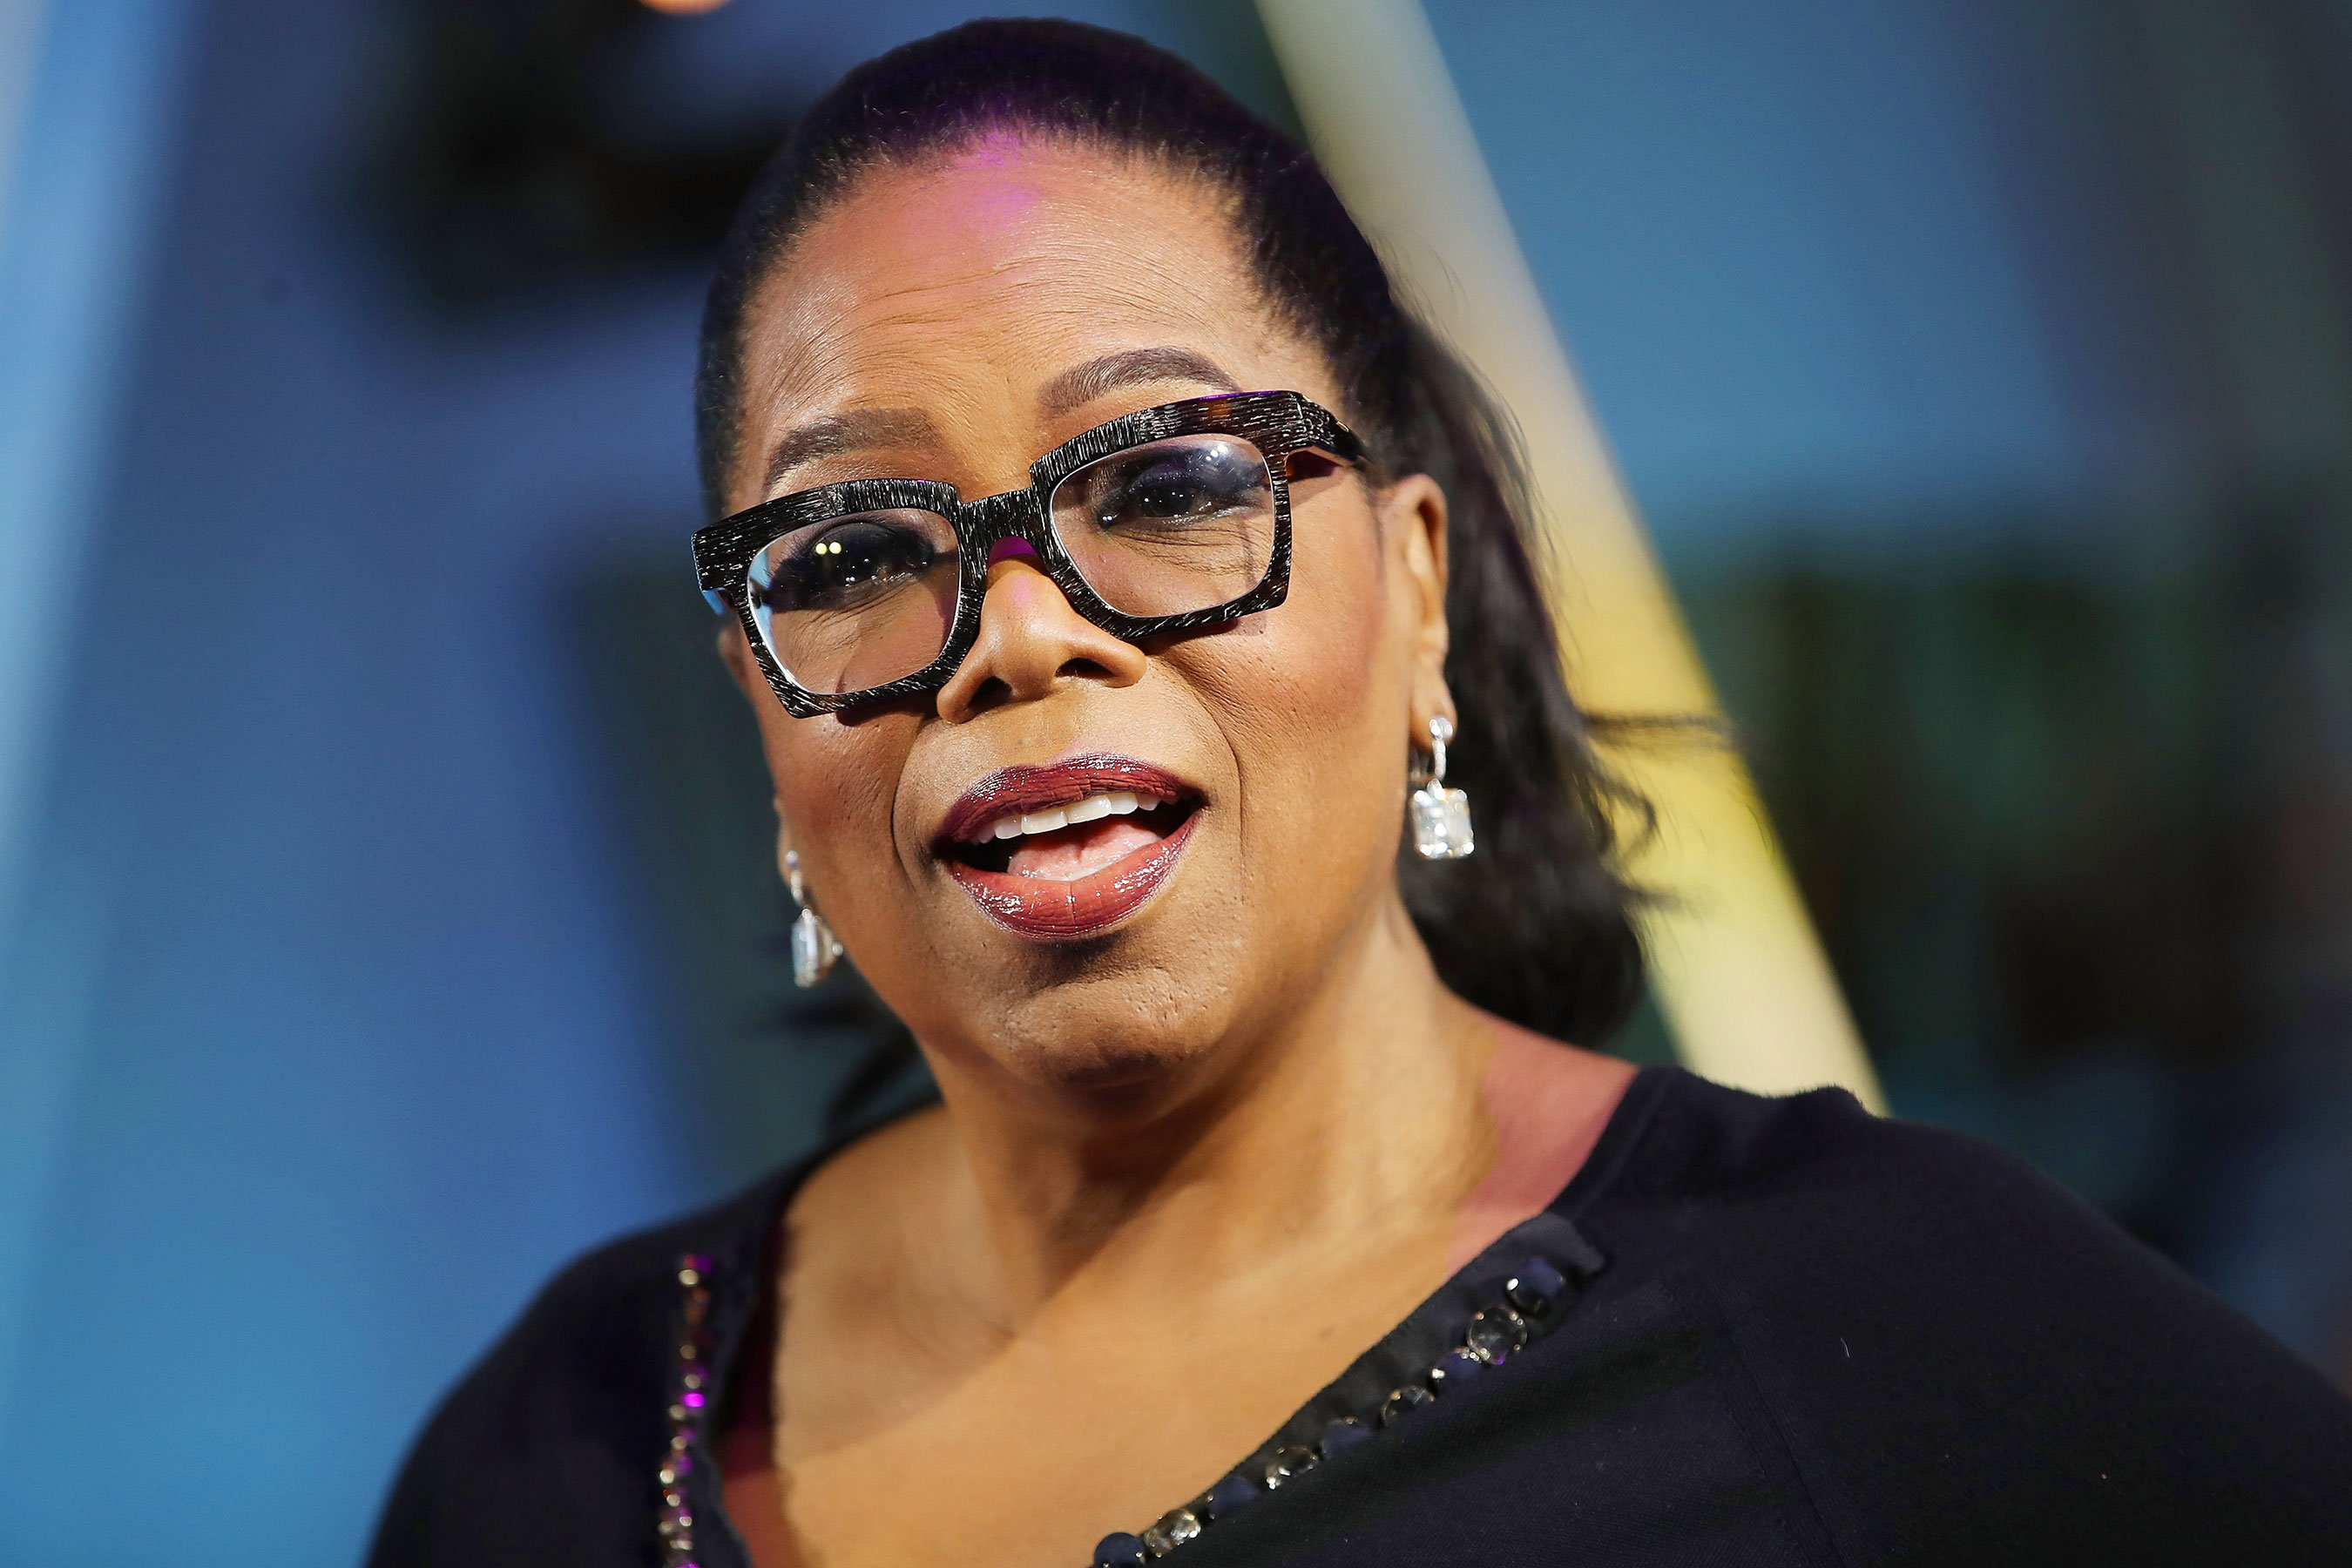 Oprah Winfrey receives letter from woman named Jesus Christ